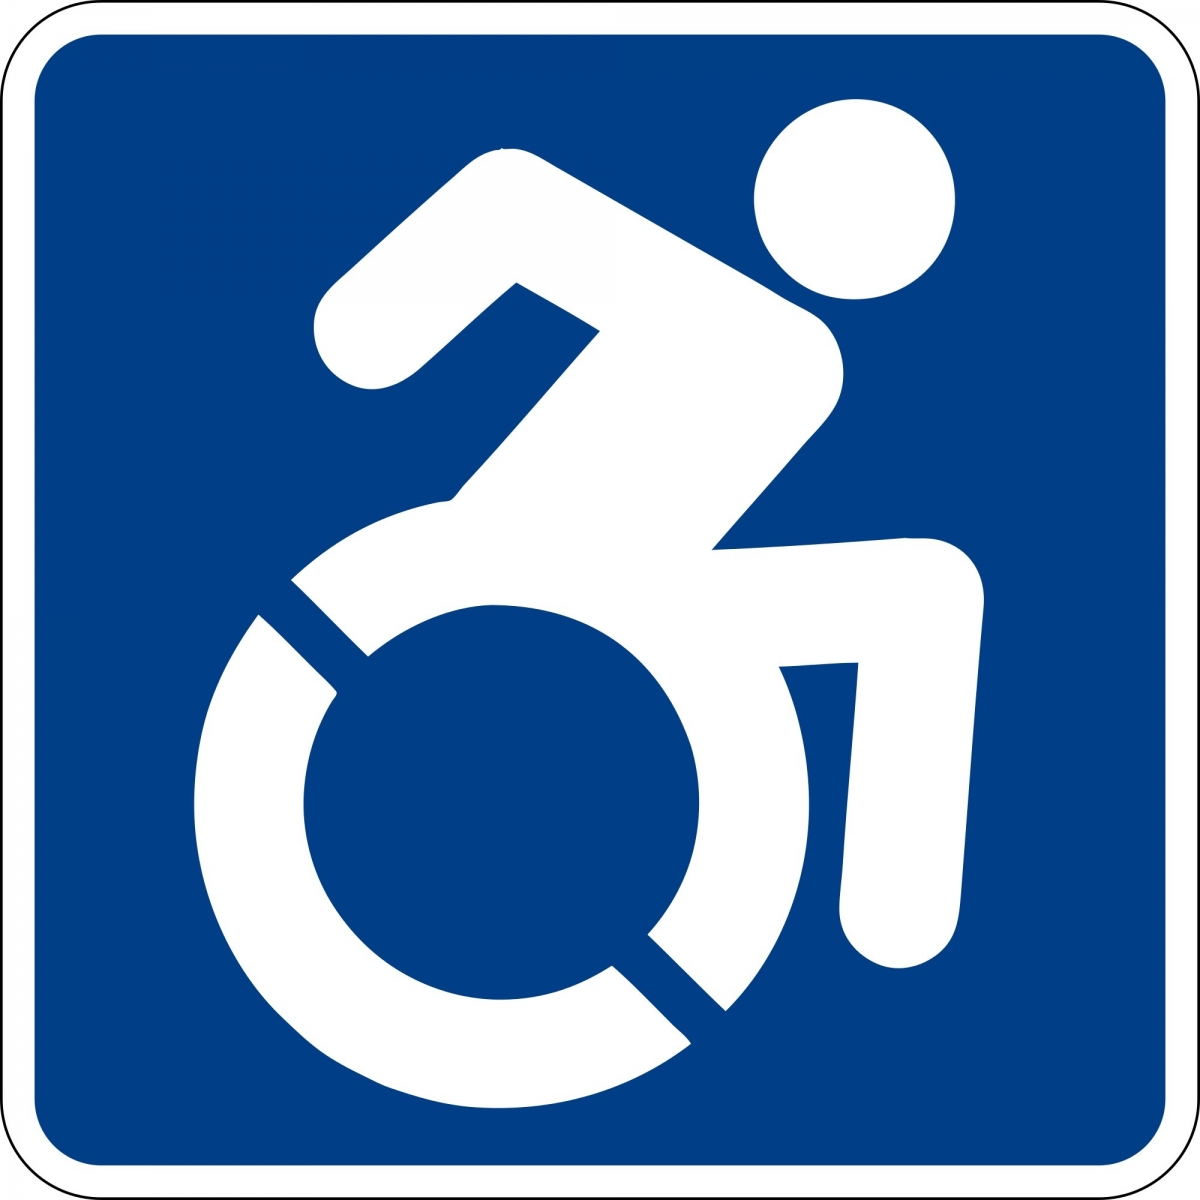 New International symbol of disabled access